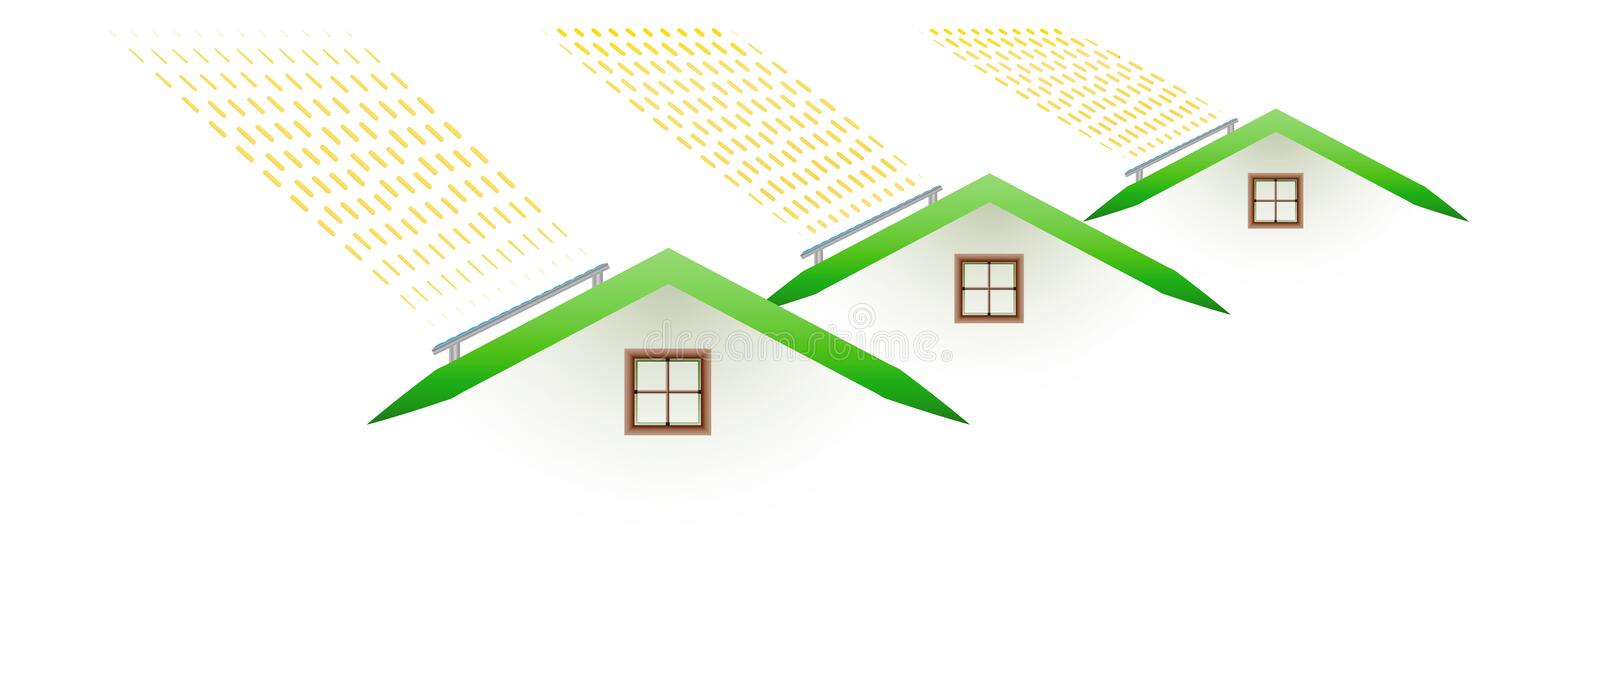 Houses and smoking roofs. Pollution - houses and smoking roofs on white background vector illustration